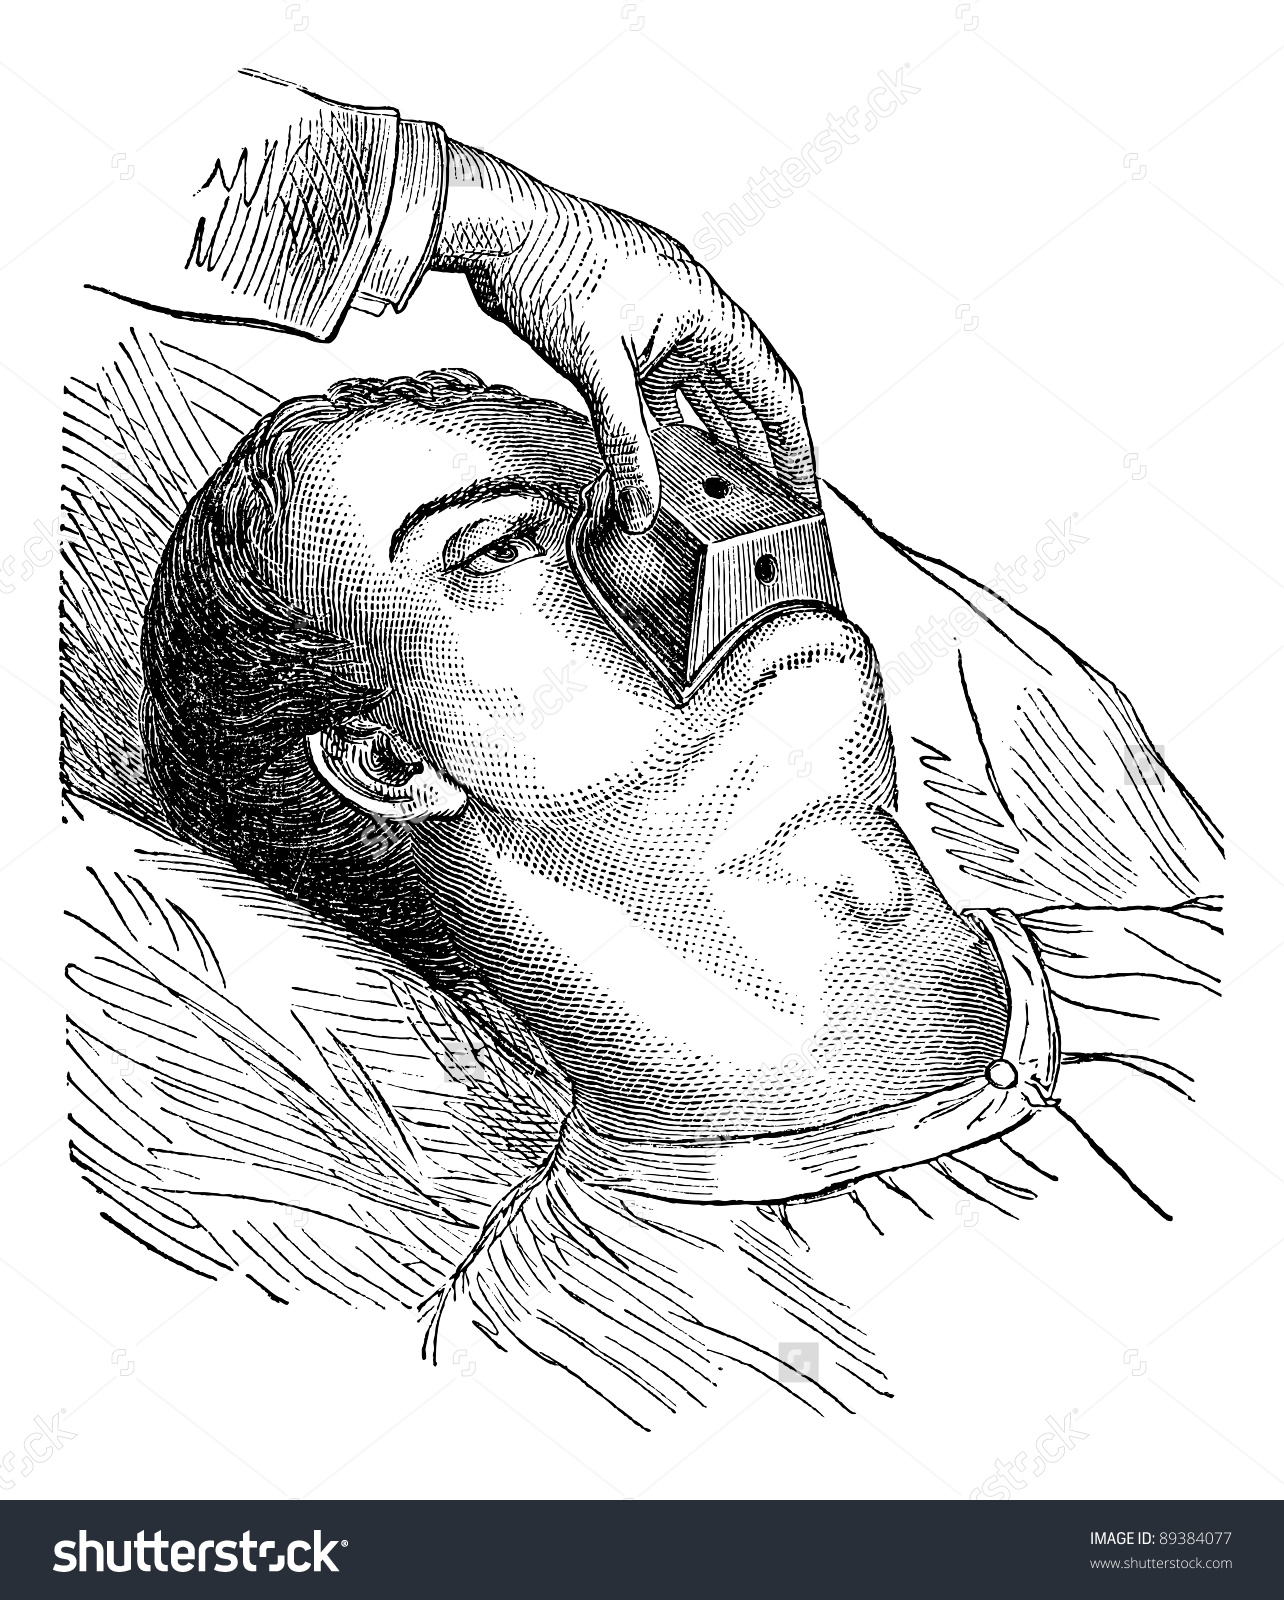 Application Cone Chloroform Vintage Engraved Illustration Stock.